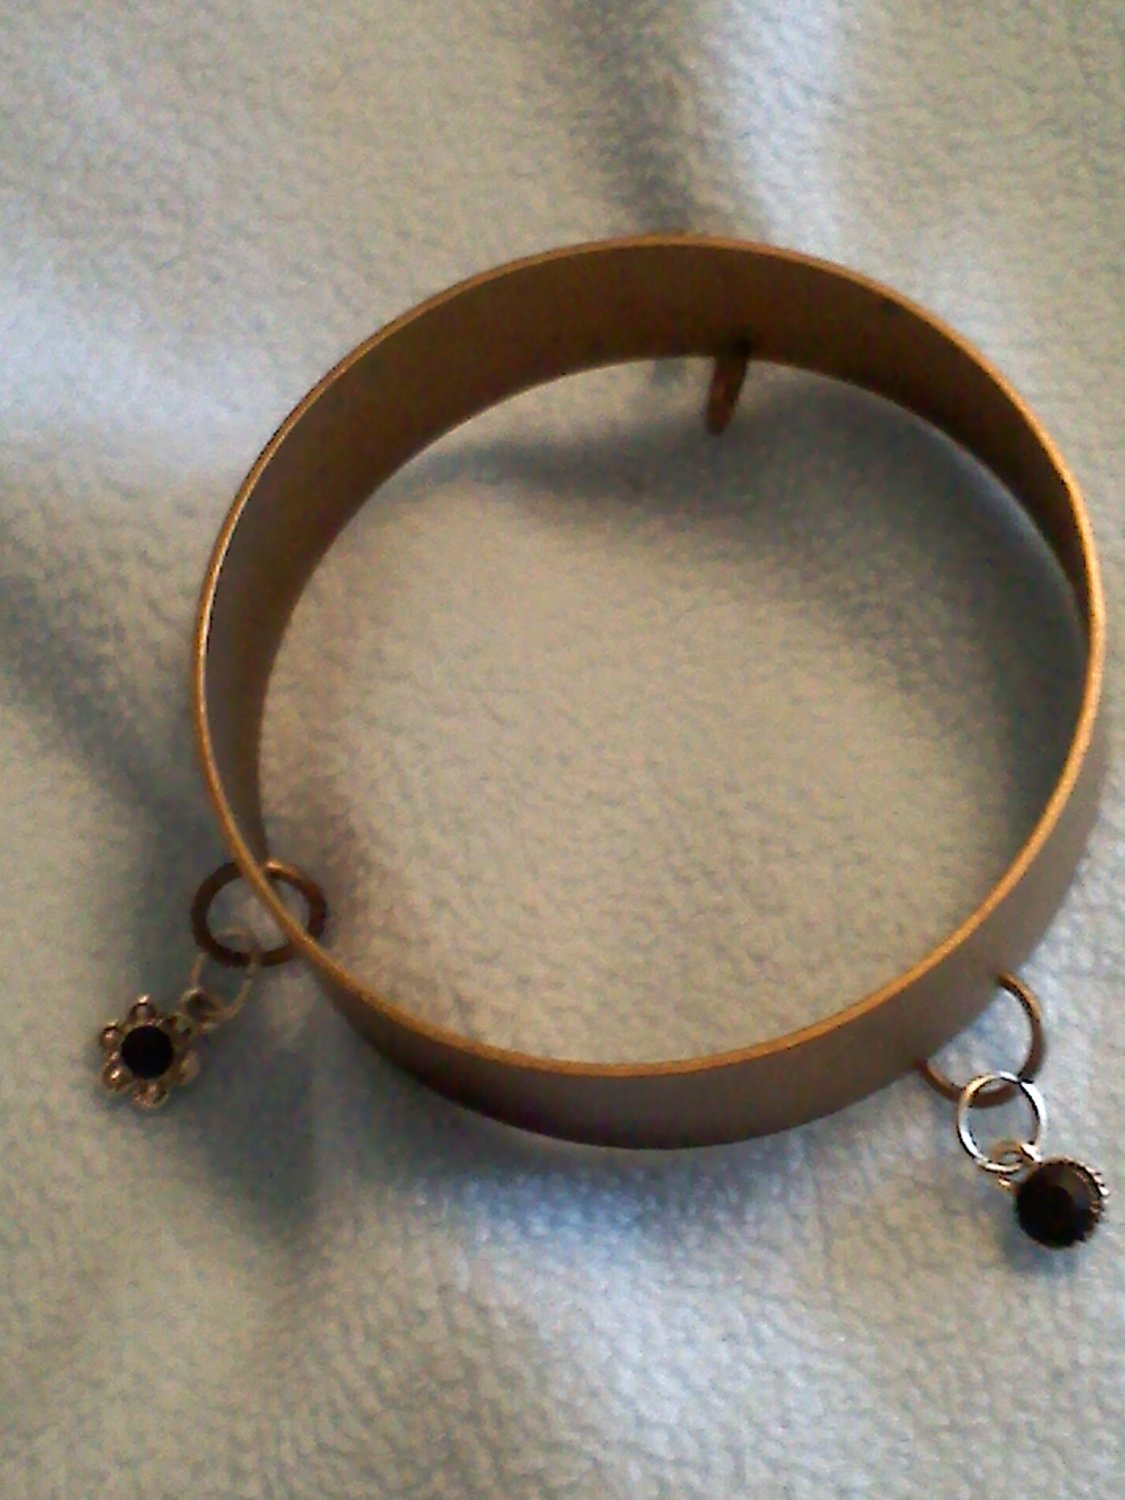 copper bracelet with charms